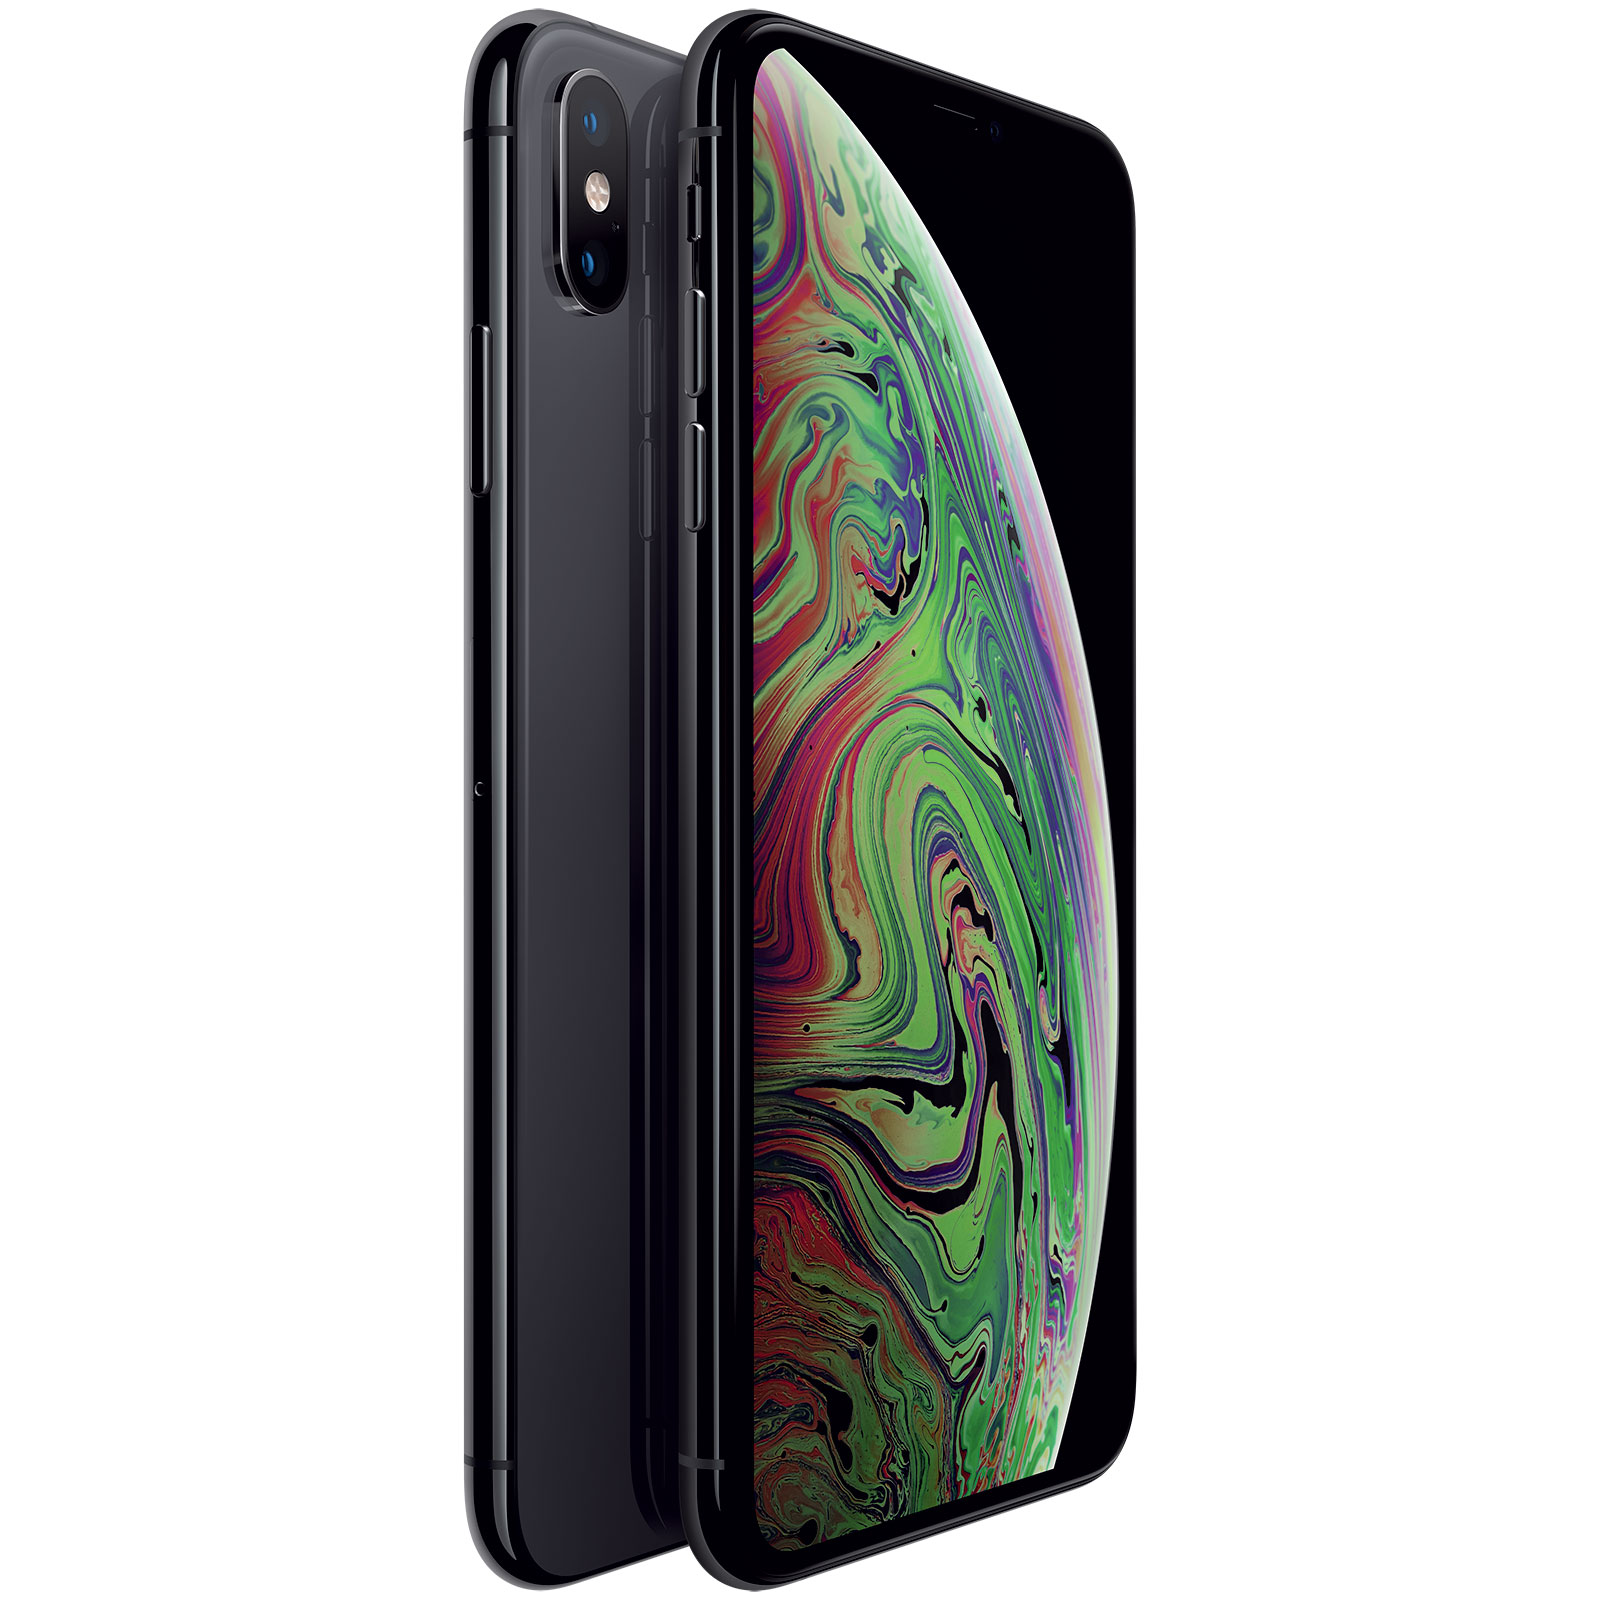 "Mobile & smartphone Apple iPhone Xs Max 64 Go Gris Sidéral Smartphone 4G-LTE Advanced IP68 Dual SIM - Apple A12 Bionic Hexa-Core - RAM 4 Go - Ecran Super Retina 6.5"" 1242 x 2688 - 64 Go - NFC/Bluetooth 5.0 - iOS 12"